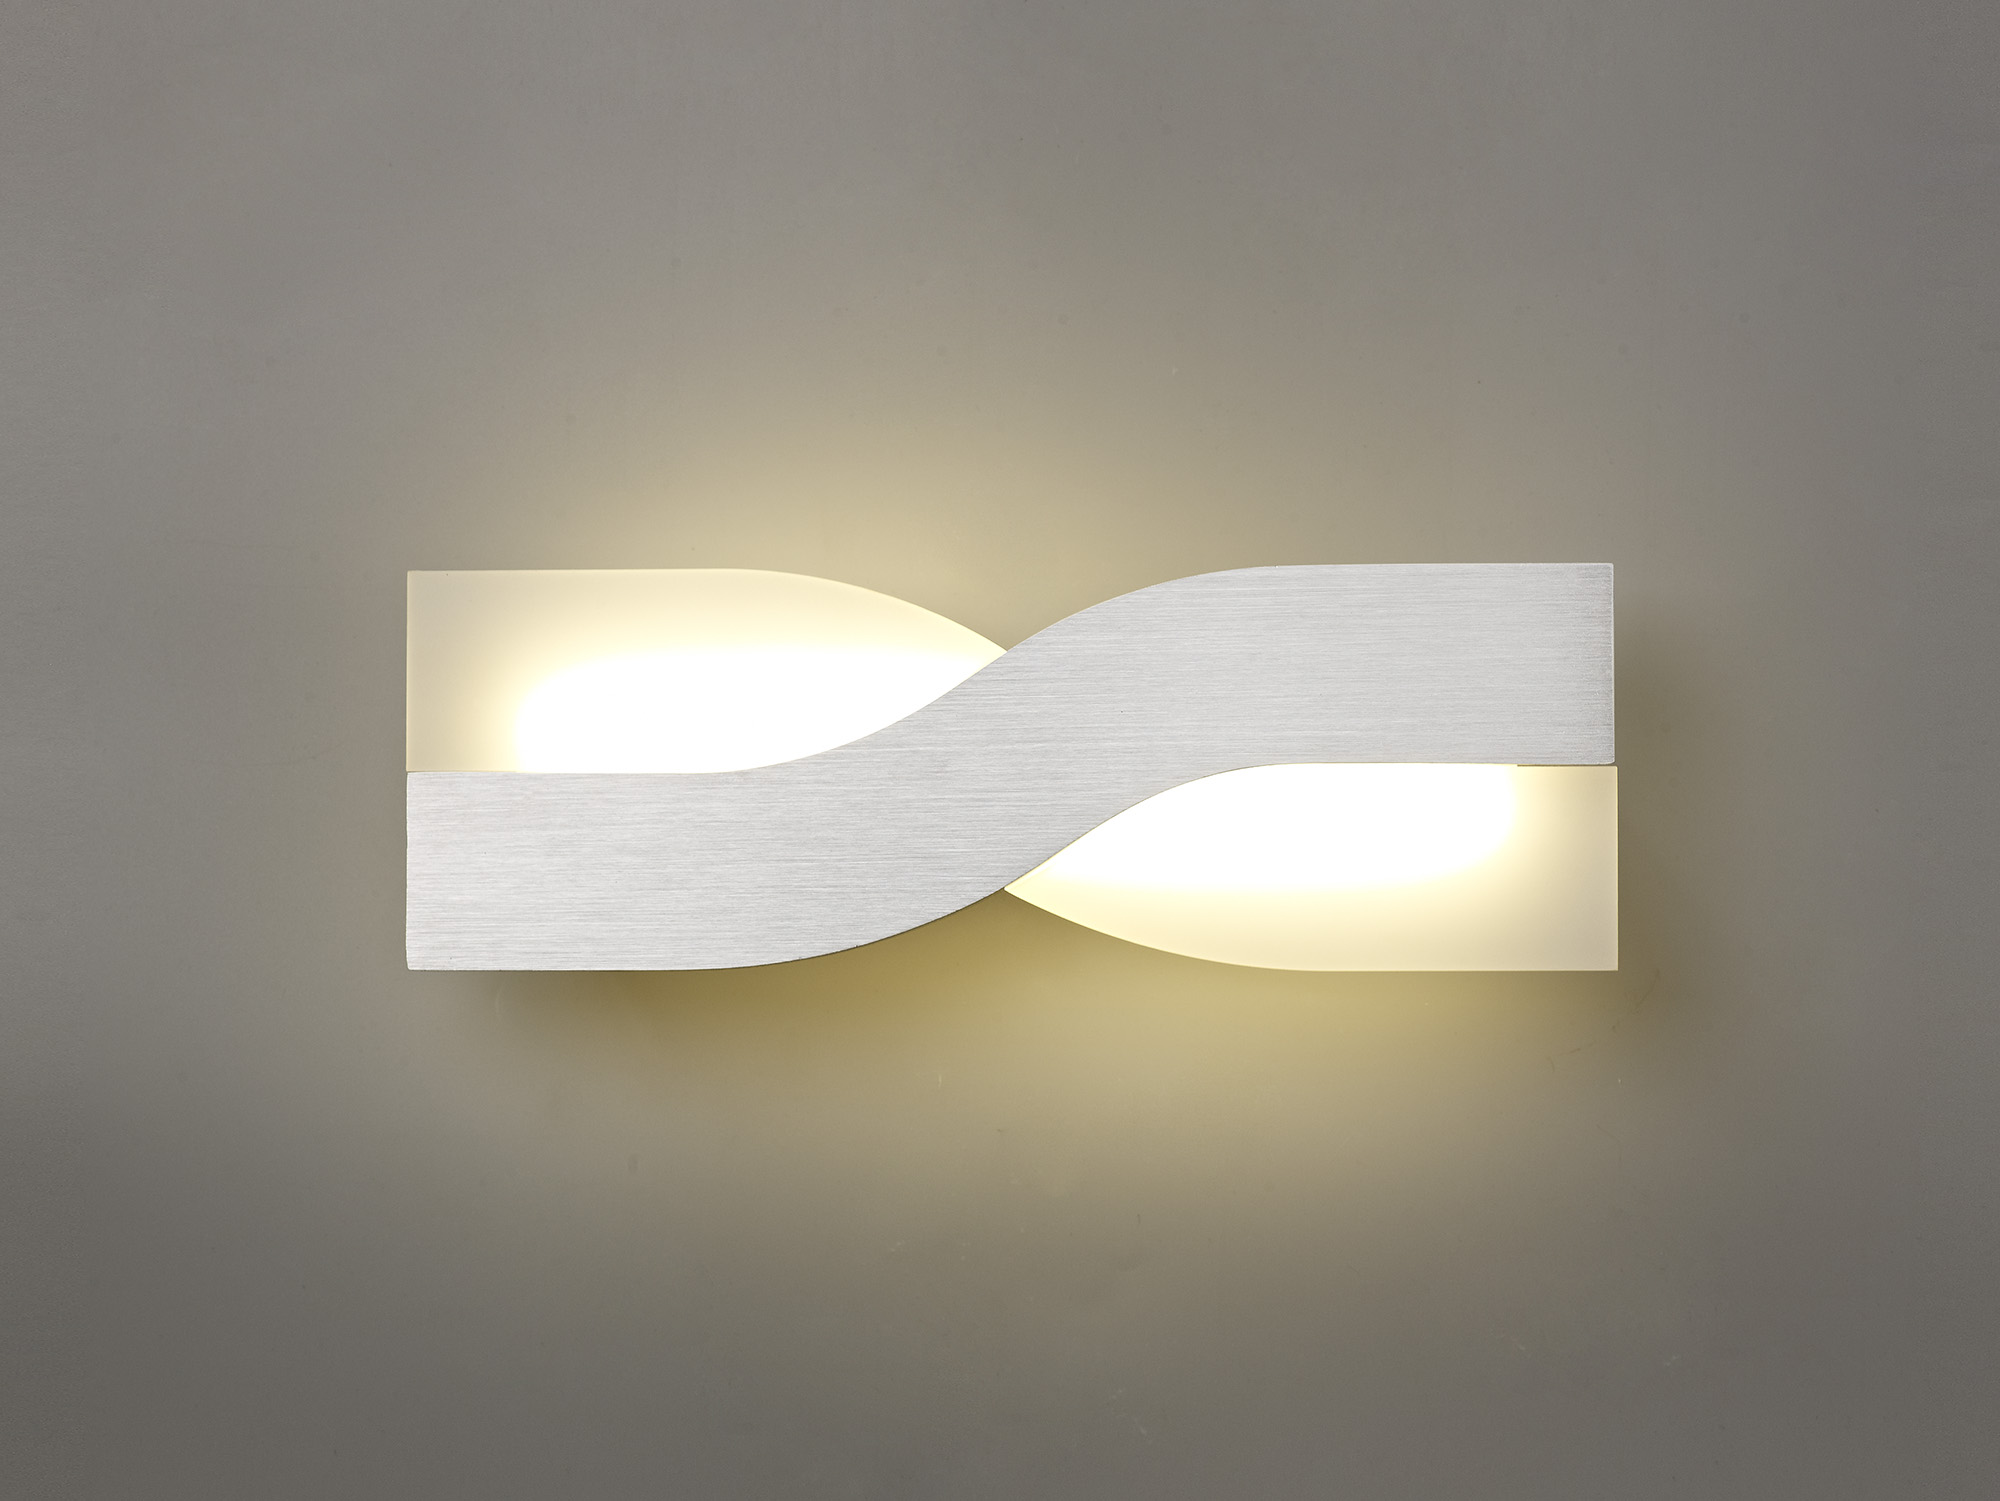 Wall Lamp, 1 x 8W LED, 3000K, 640lm, 3yrs Warranty